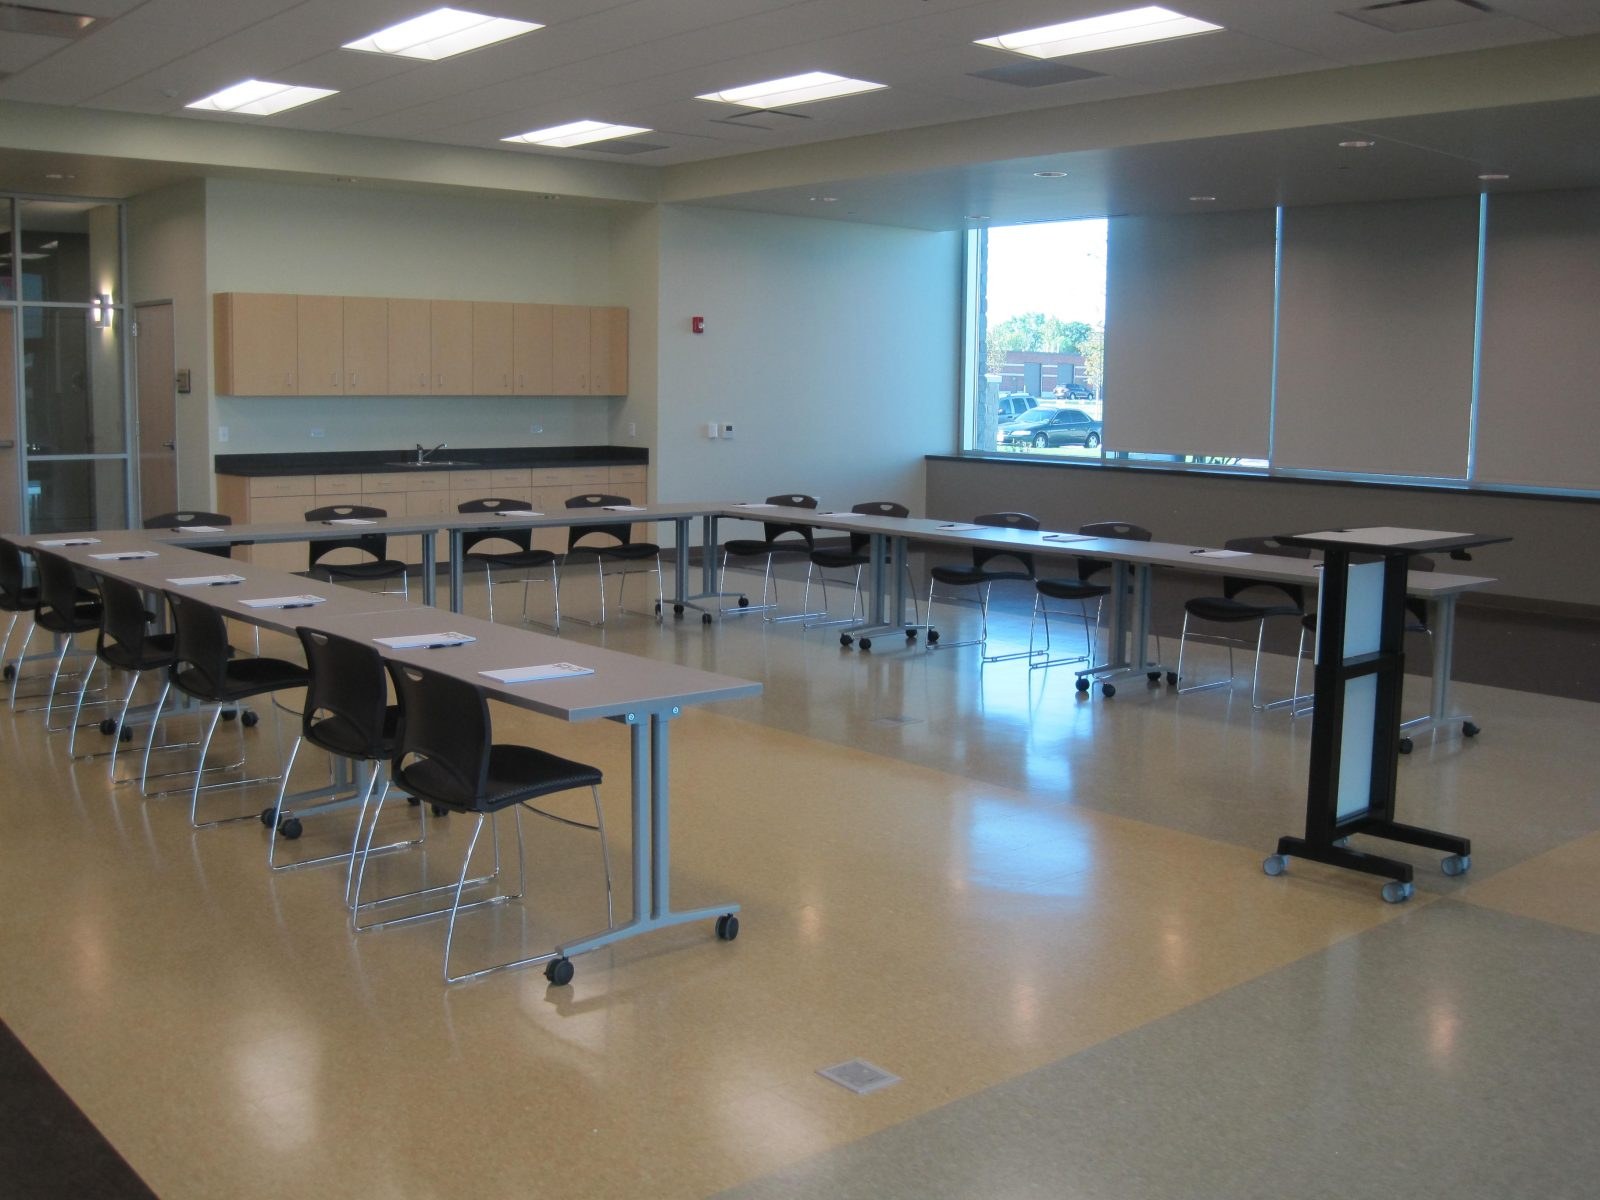 Education Room C_view 2